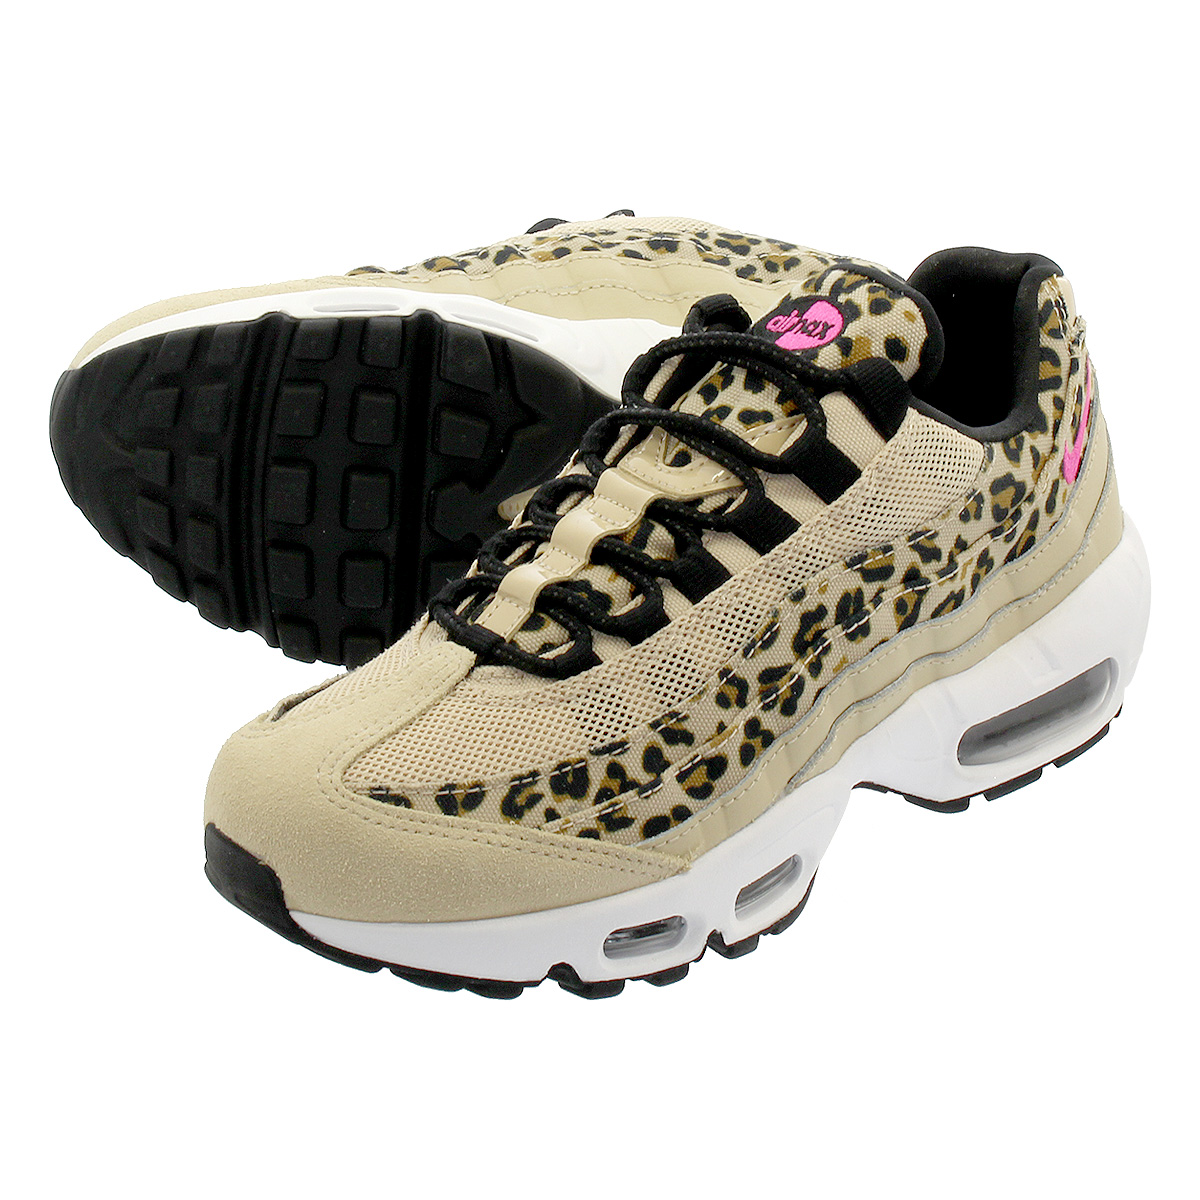 hot sale online dd22e b5d26 NIKE WMNS AIR MAX 95 PRM Nike women Air Max 95 premium DESERT ORE/LASER  FUCHSIA/BLACK/WHEAT cd0180-200